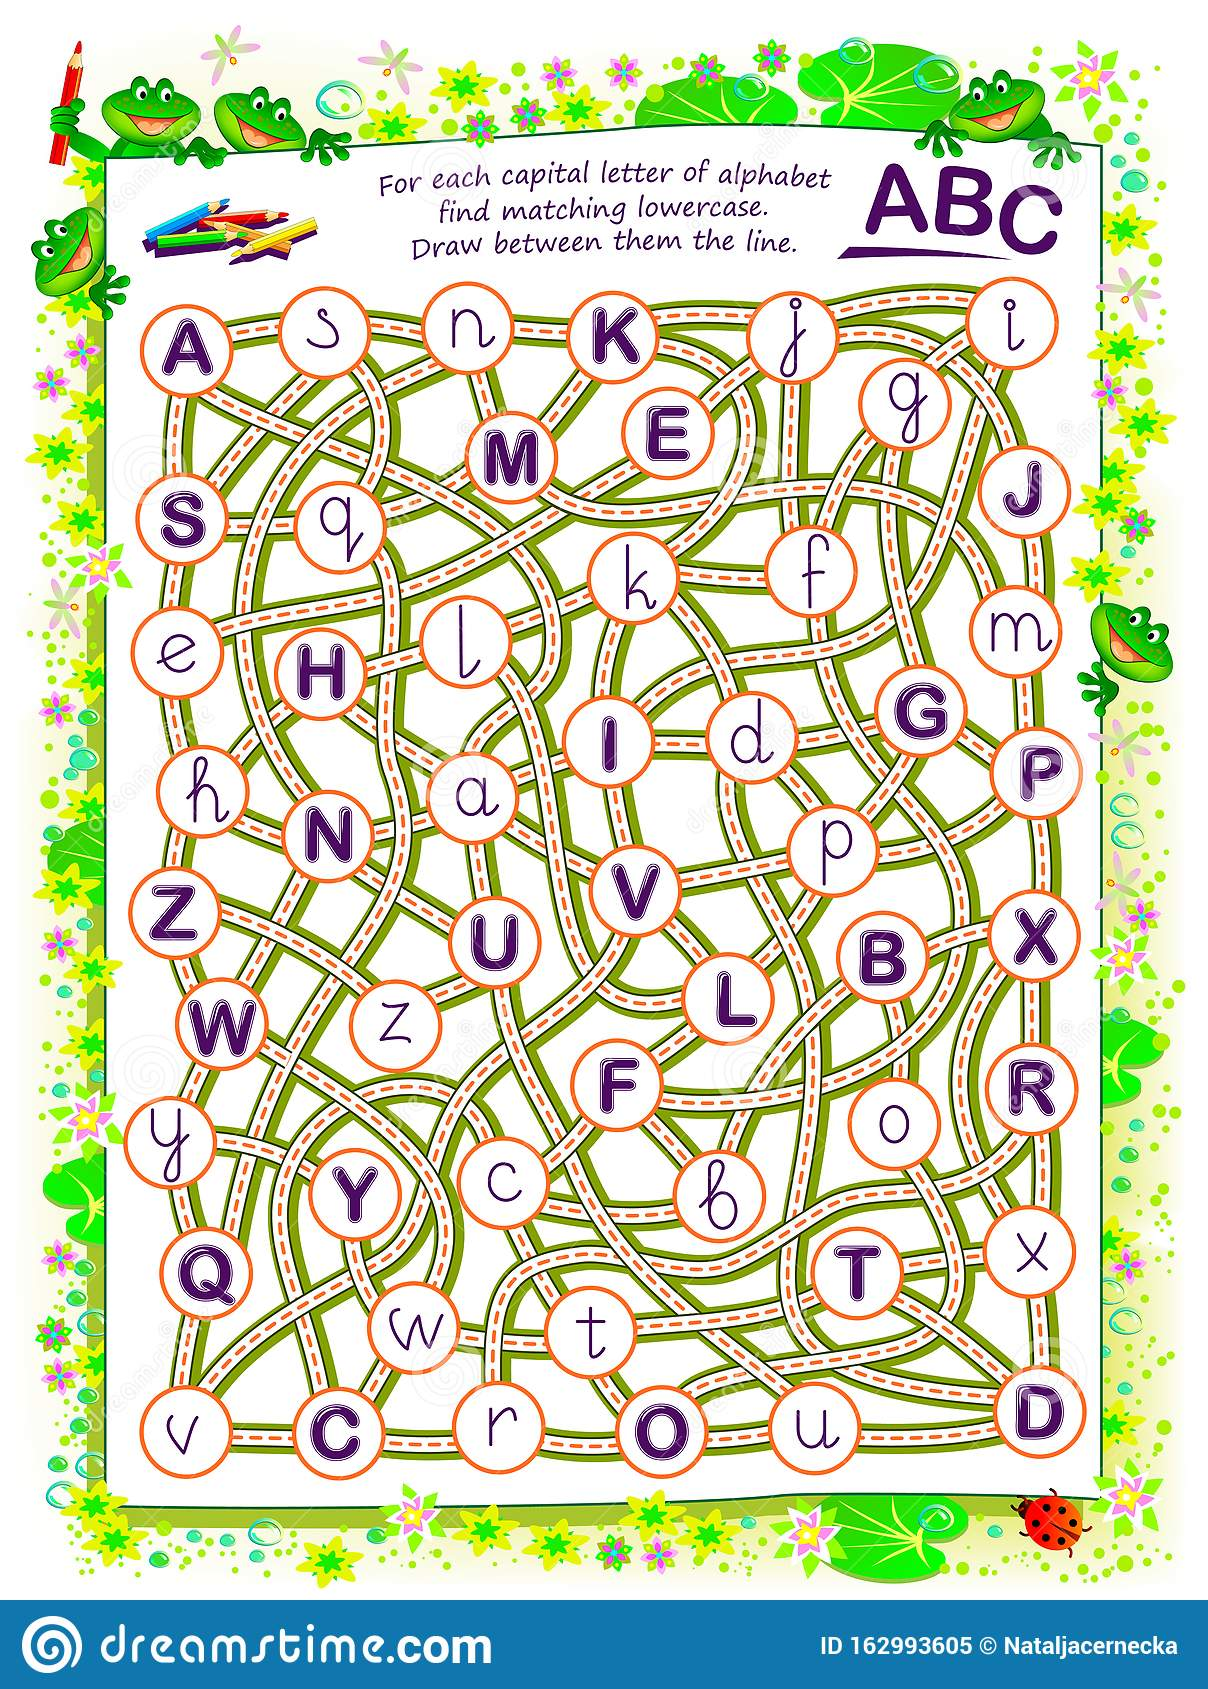 Logic Puzzle Game For Kids For Each Capital Letter Of